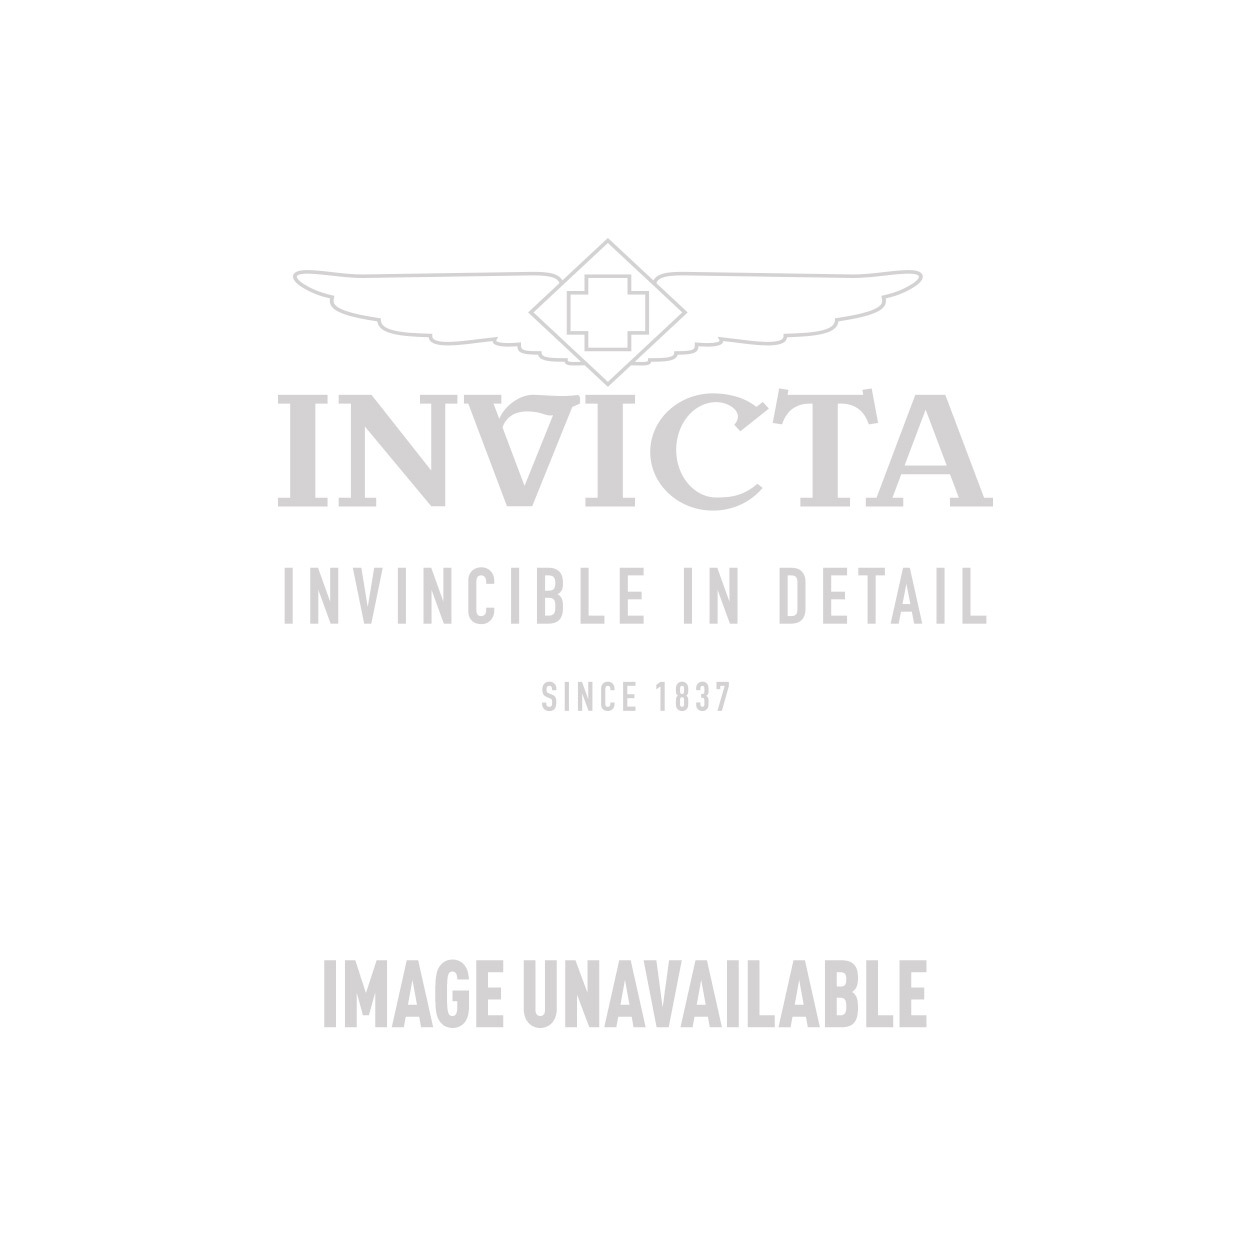 Invicta Specialty Quartz Watch - Rose Gold case with Brown tone Polyurethane band - Model 14335